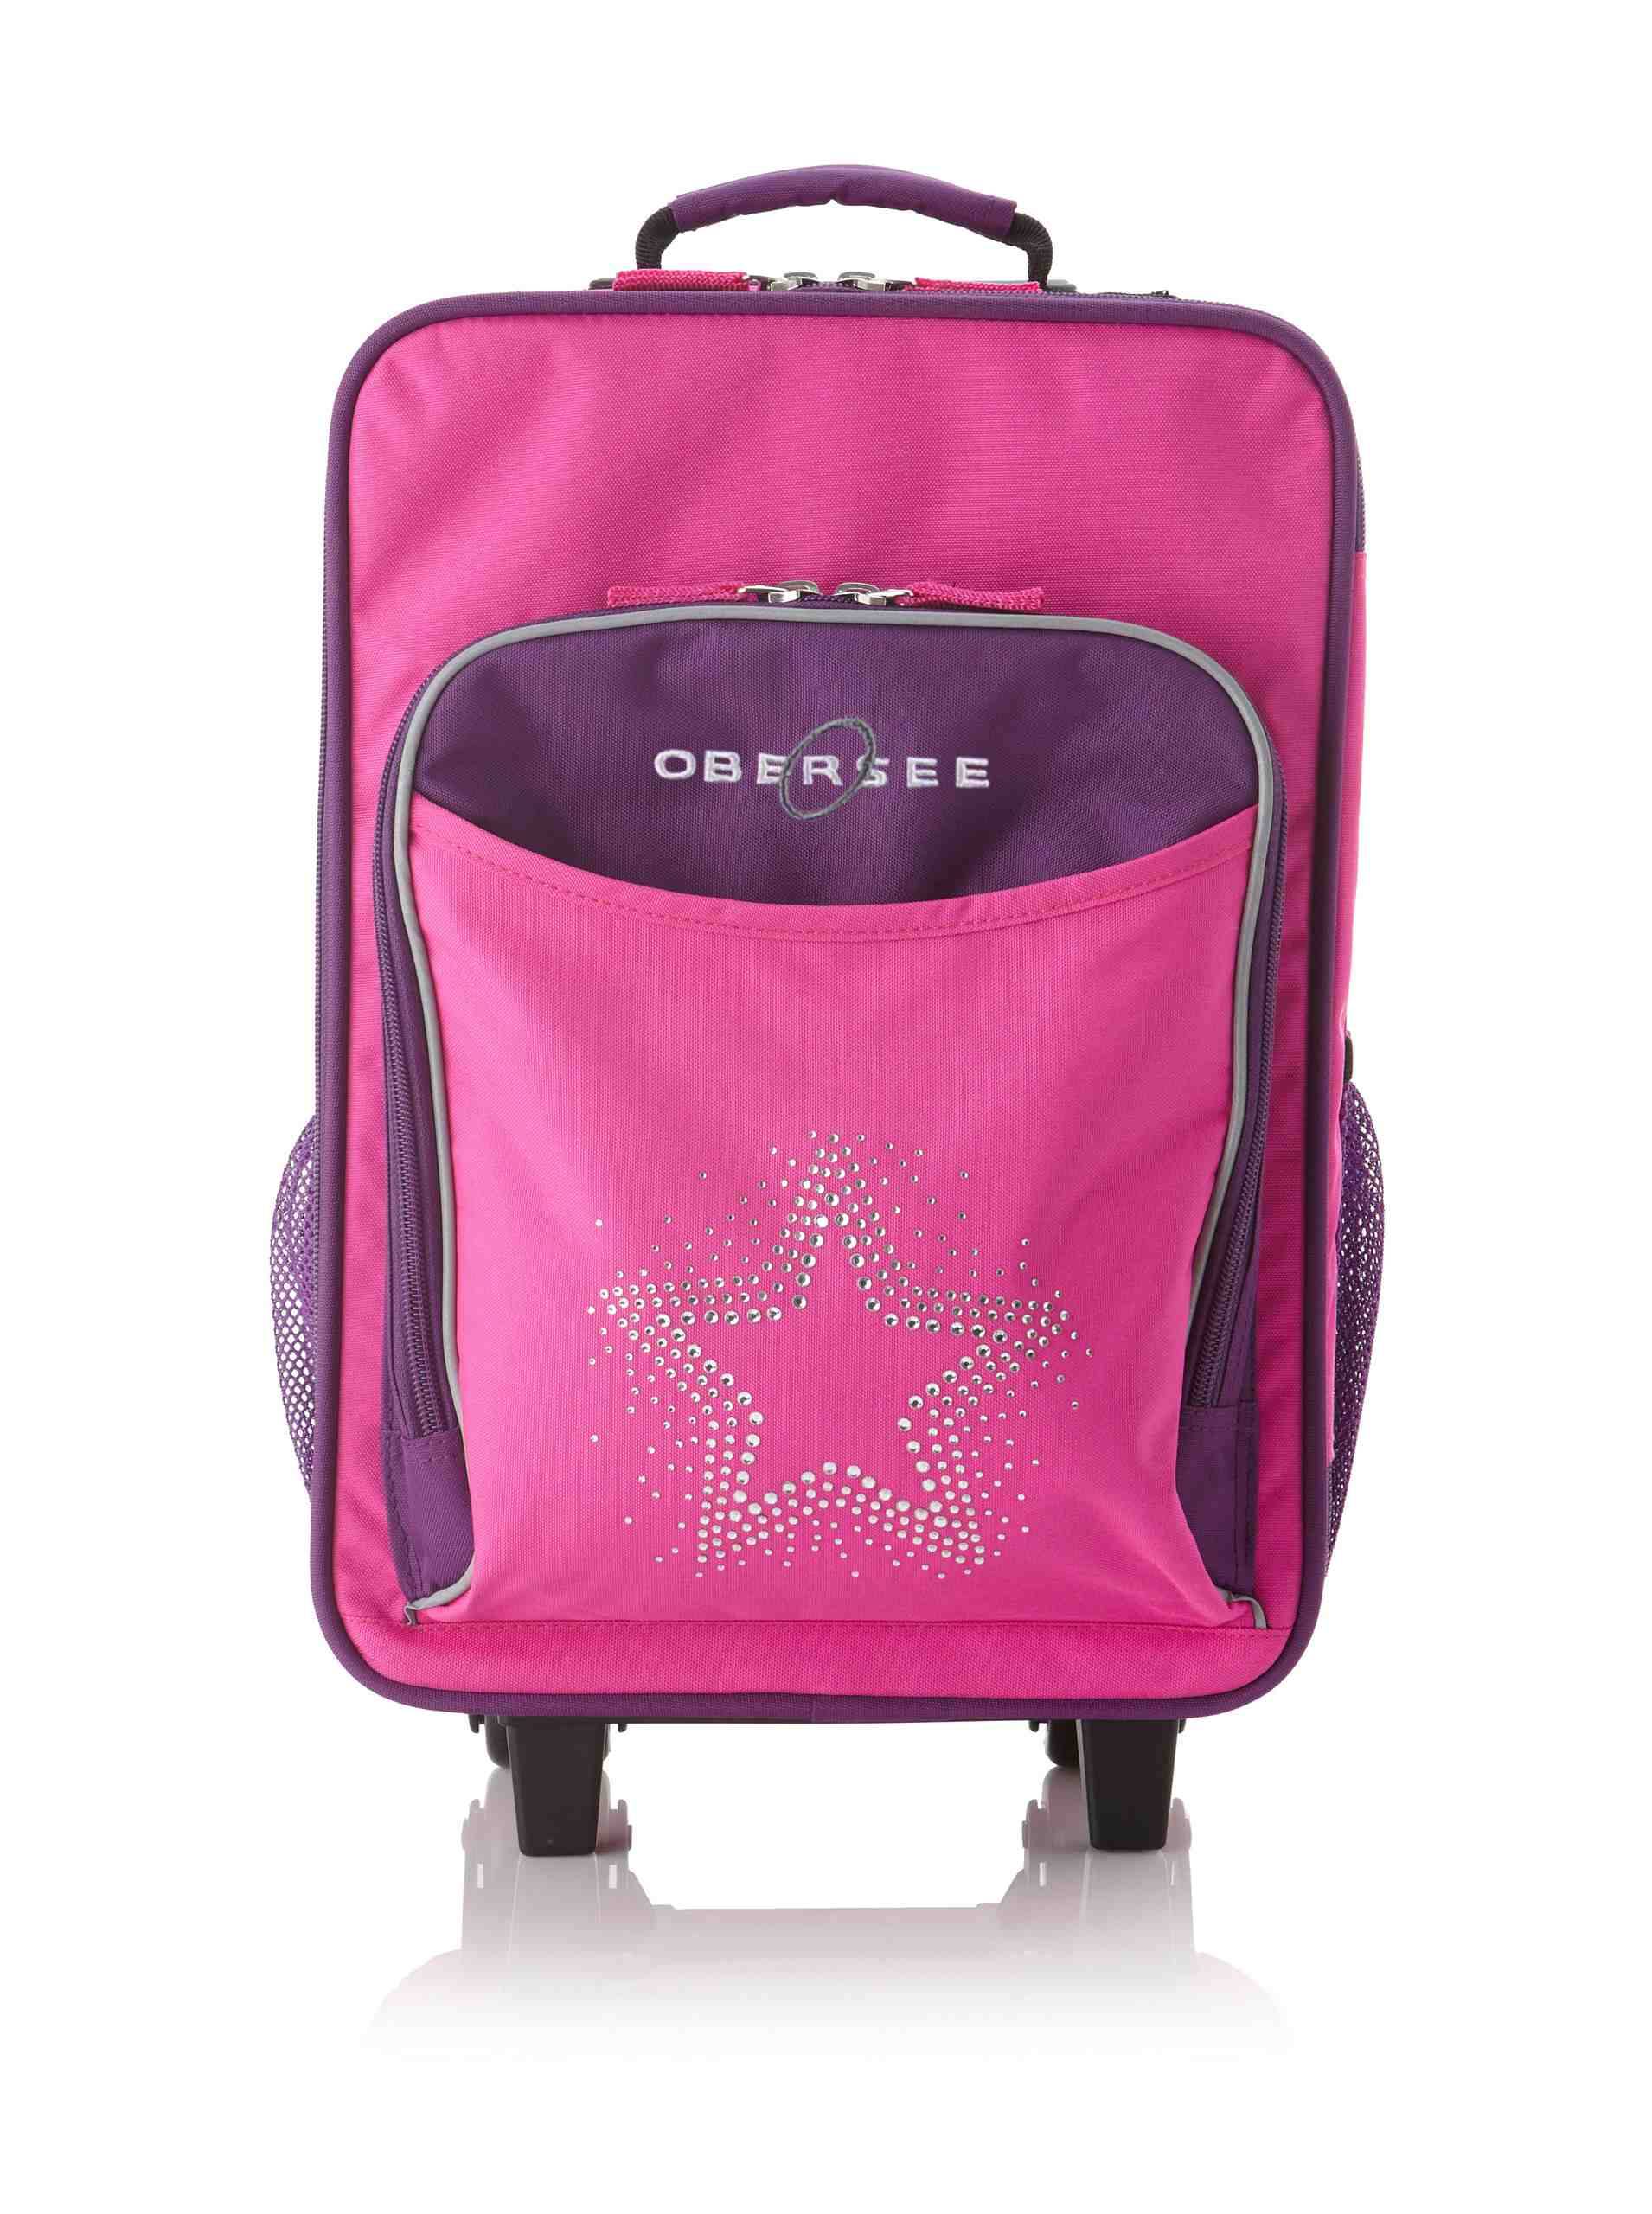 pink suitcase for kids